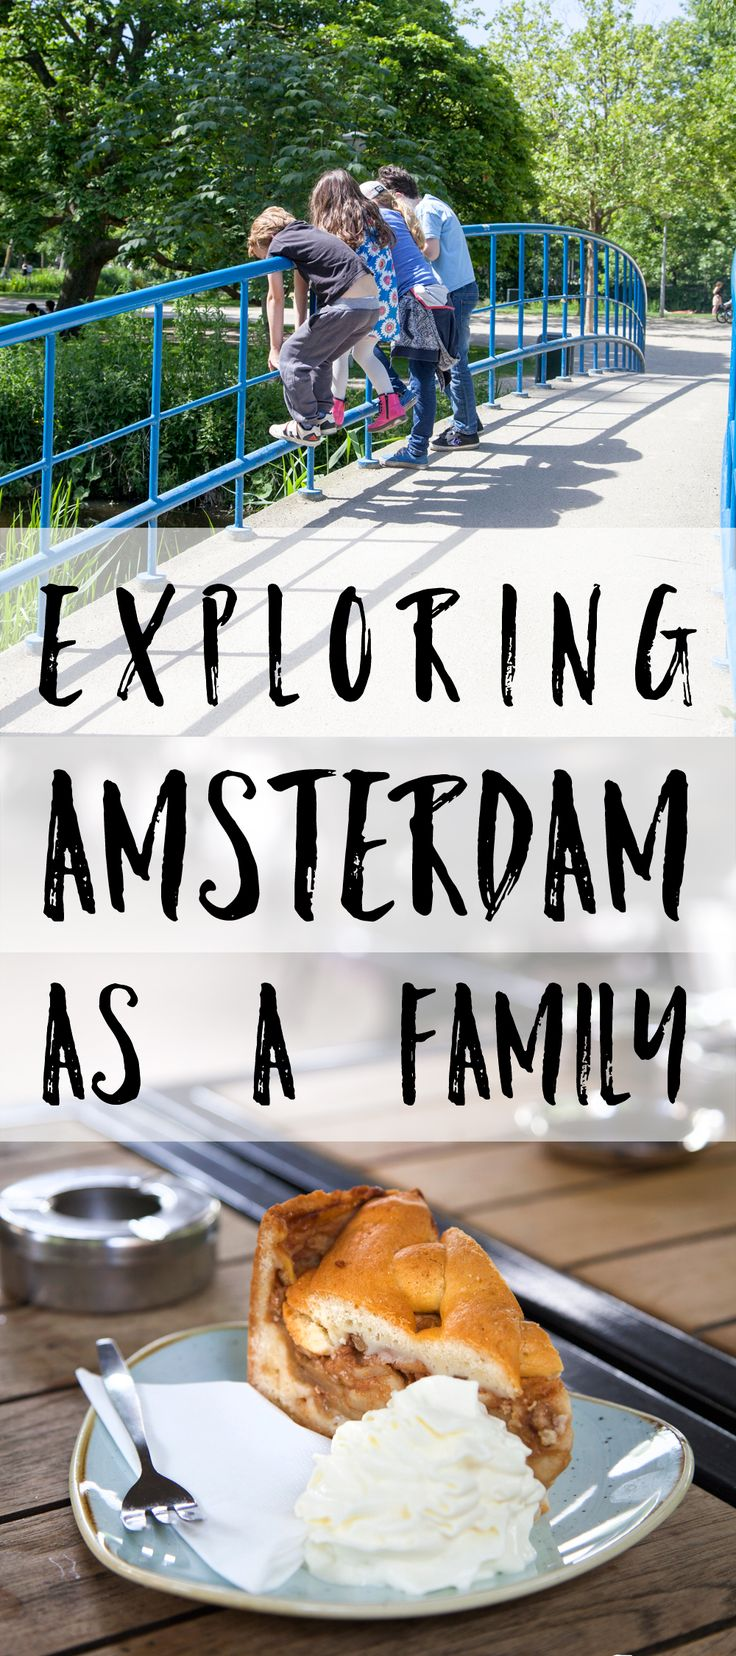 Exploring Amsterdam as a family - the best things to see, do and eat when you're visiting with children.